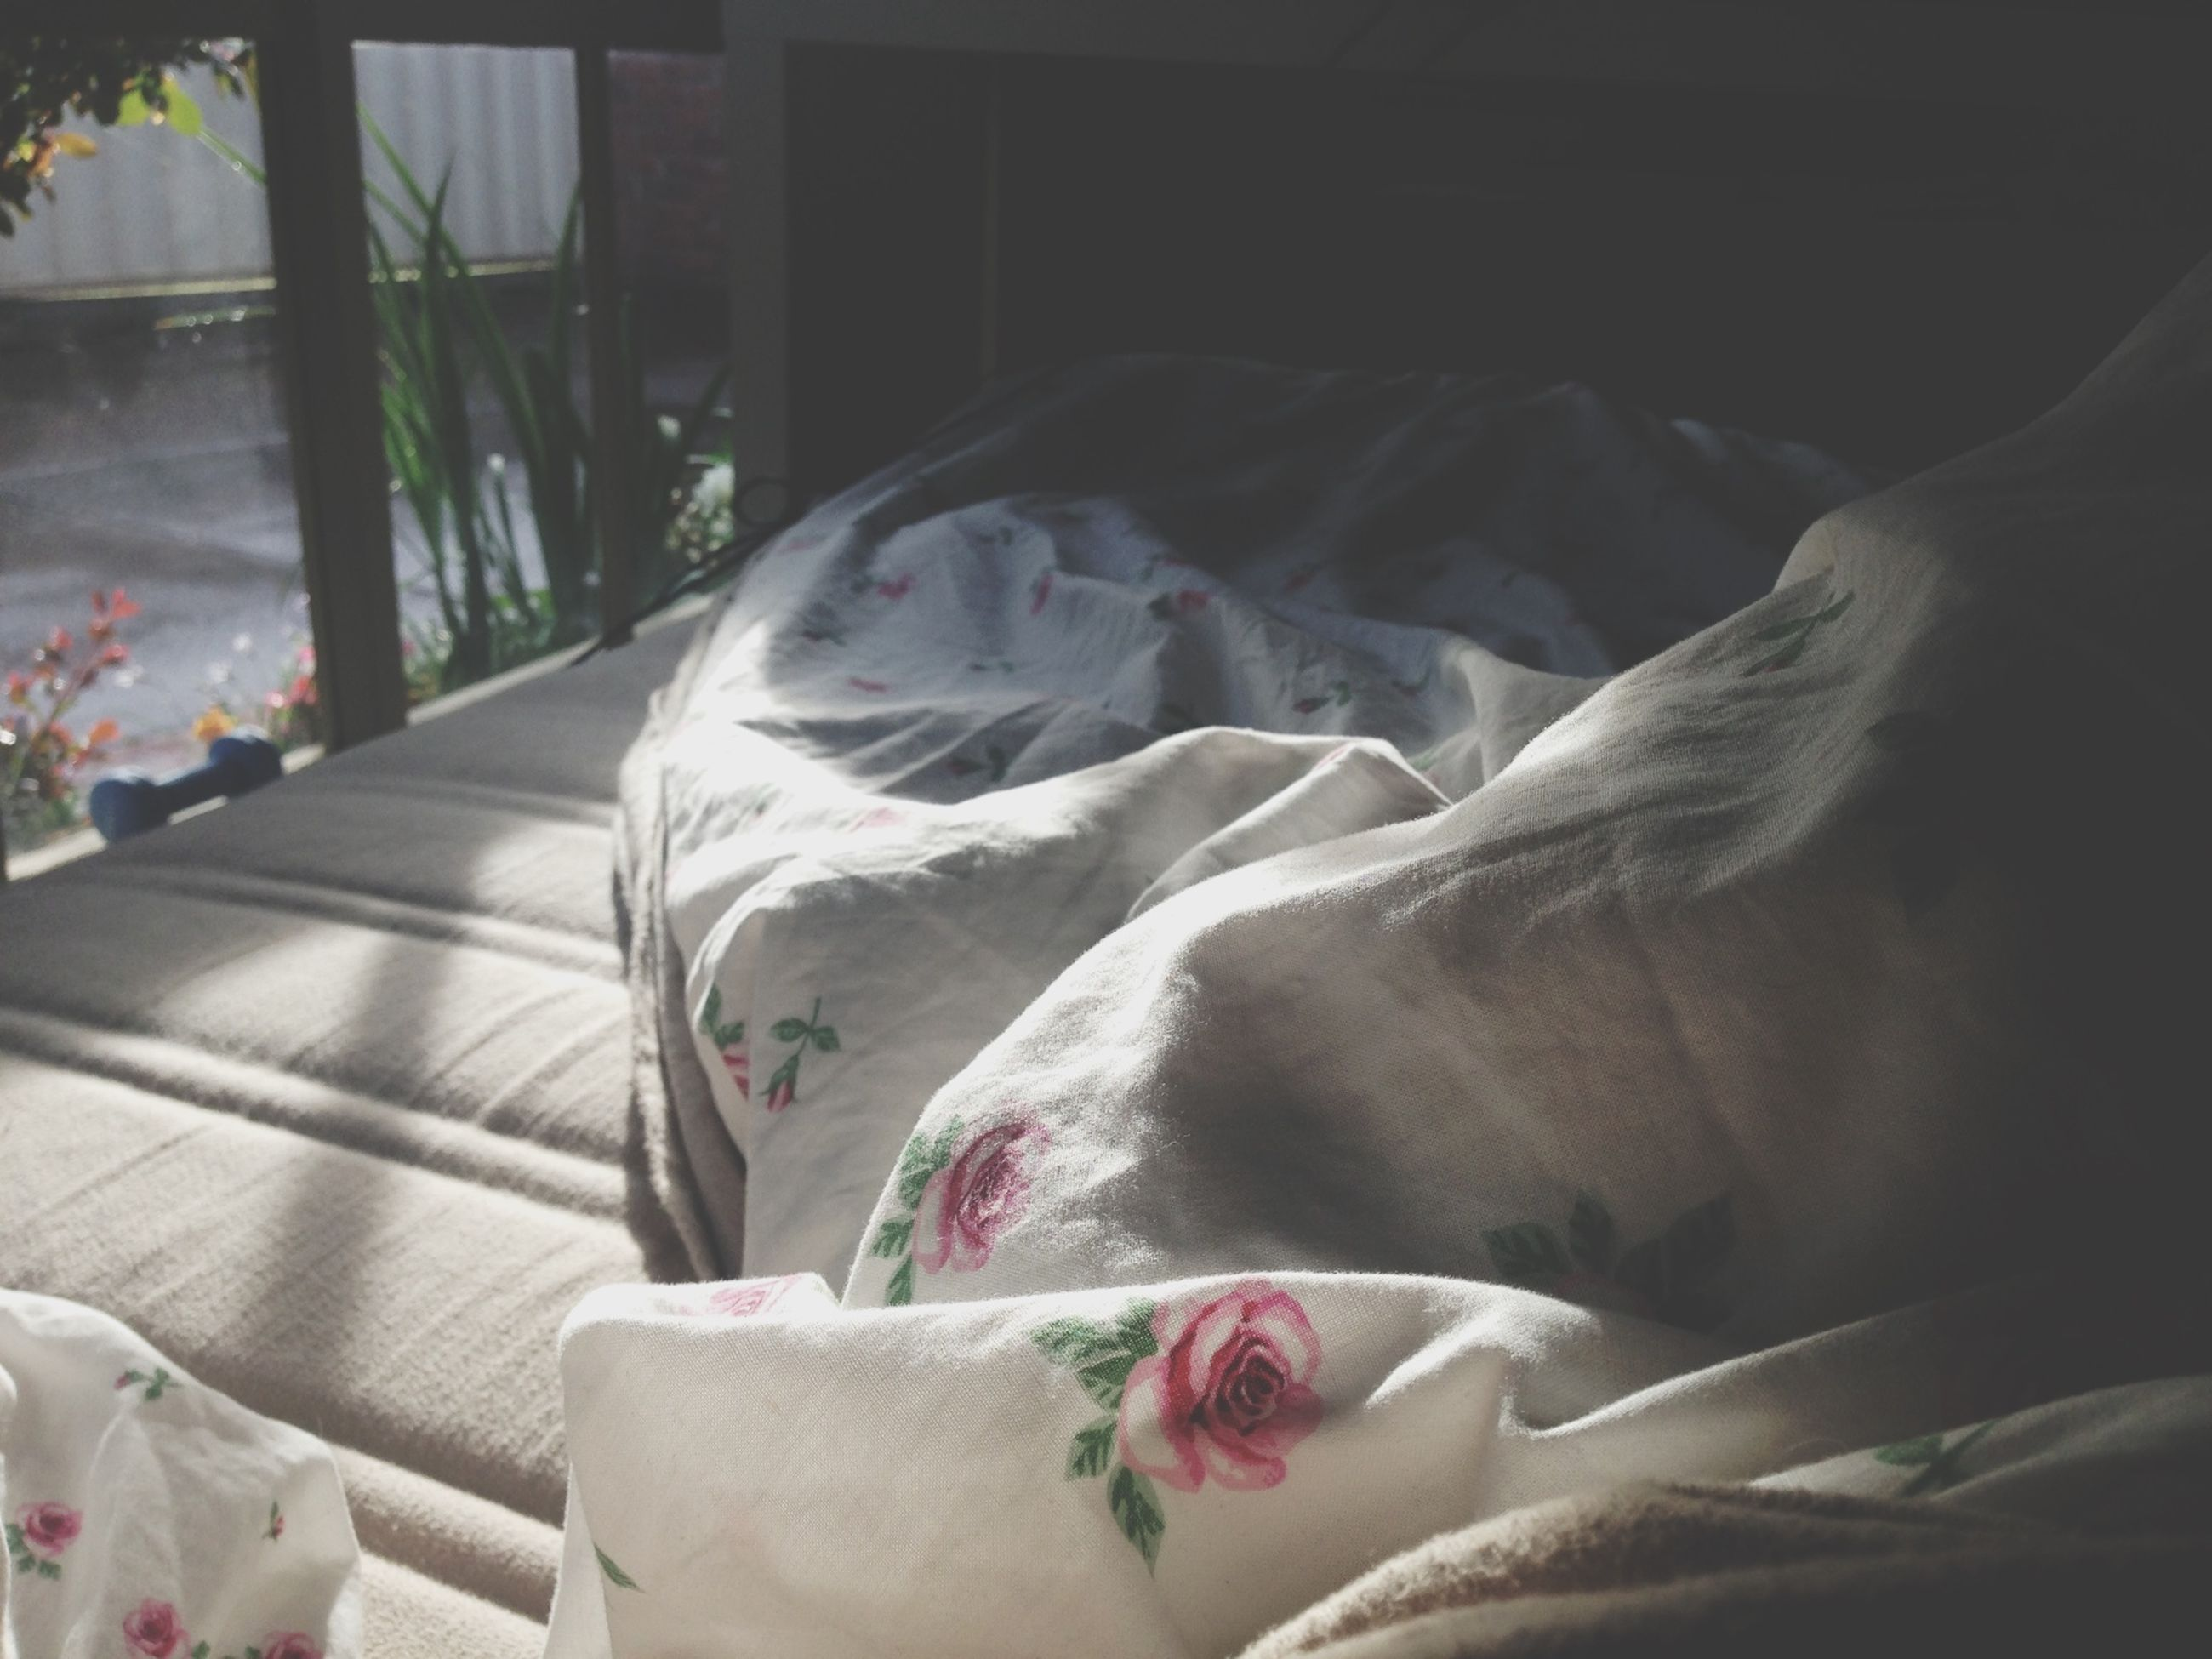 indoors, bed, relaxation, sofa, resting, bedroom, pillow, sleeping, blanket, comfortable, cushion, home interior, chair, sheet, lying down, fabric, domestic animals, textile, absence, curtain